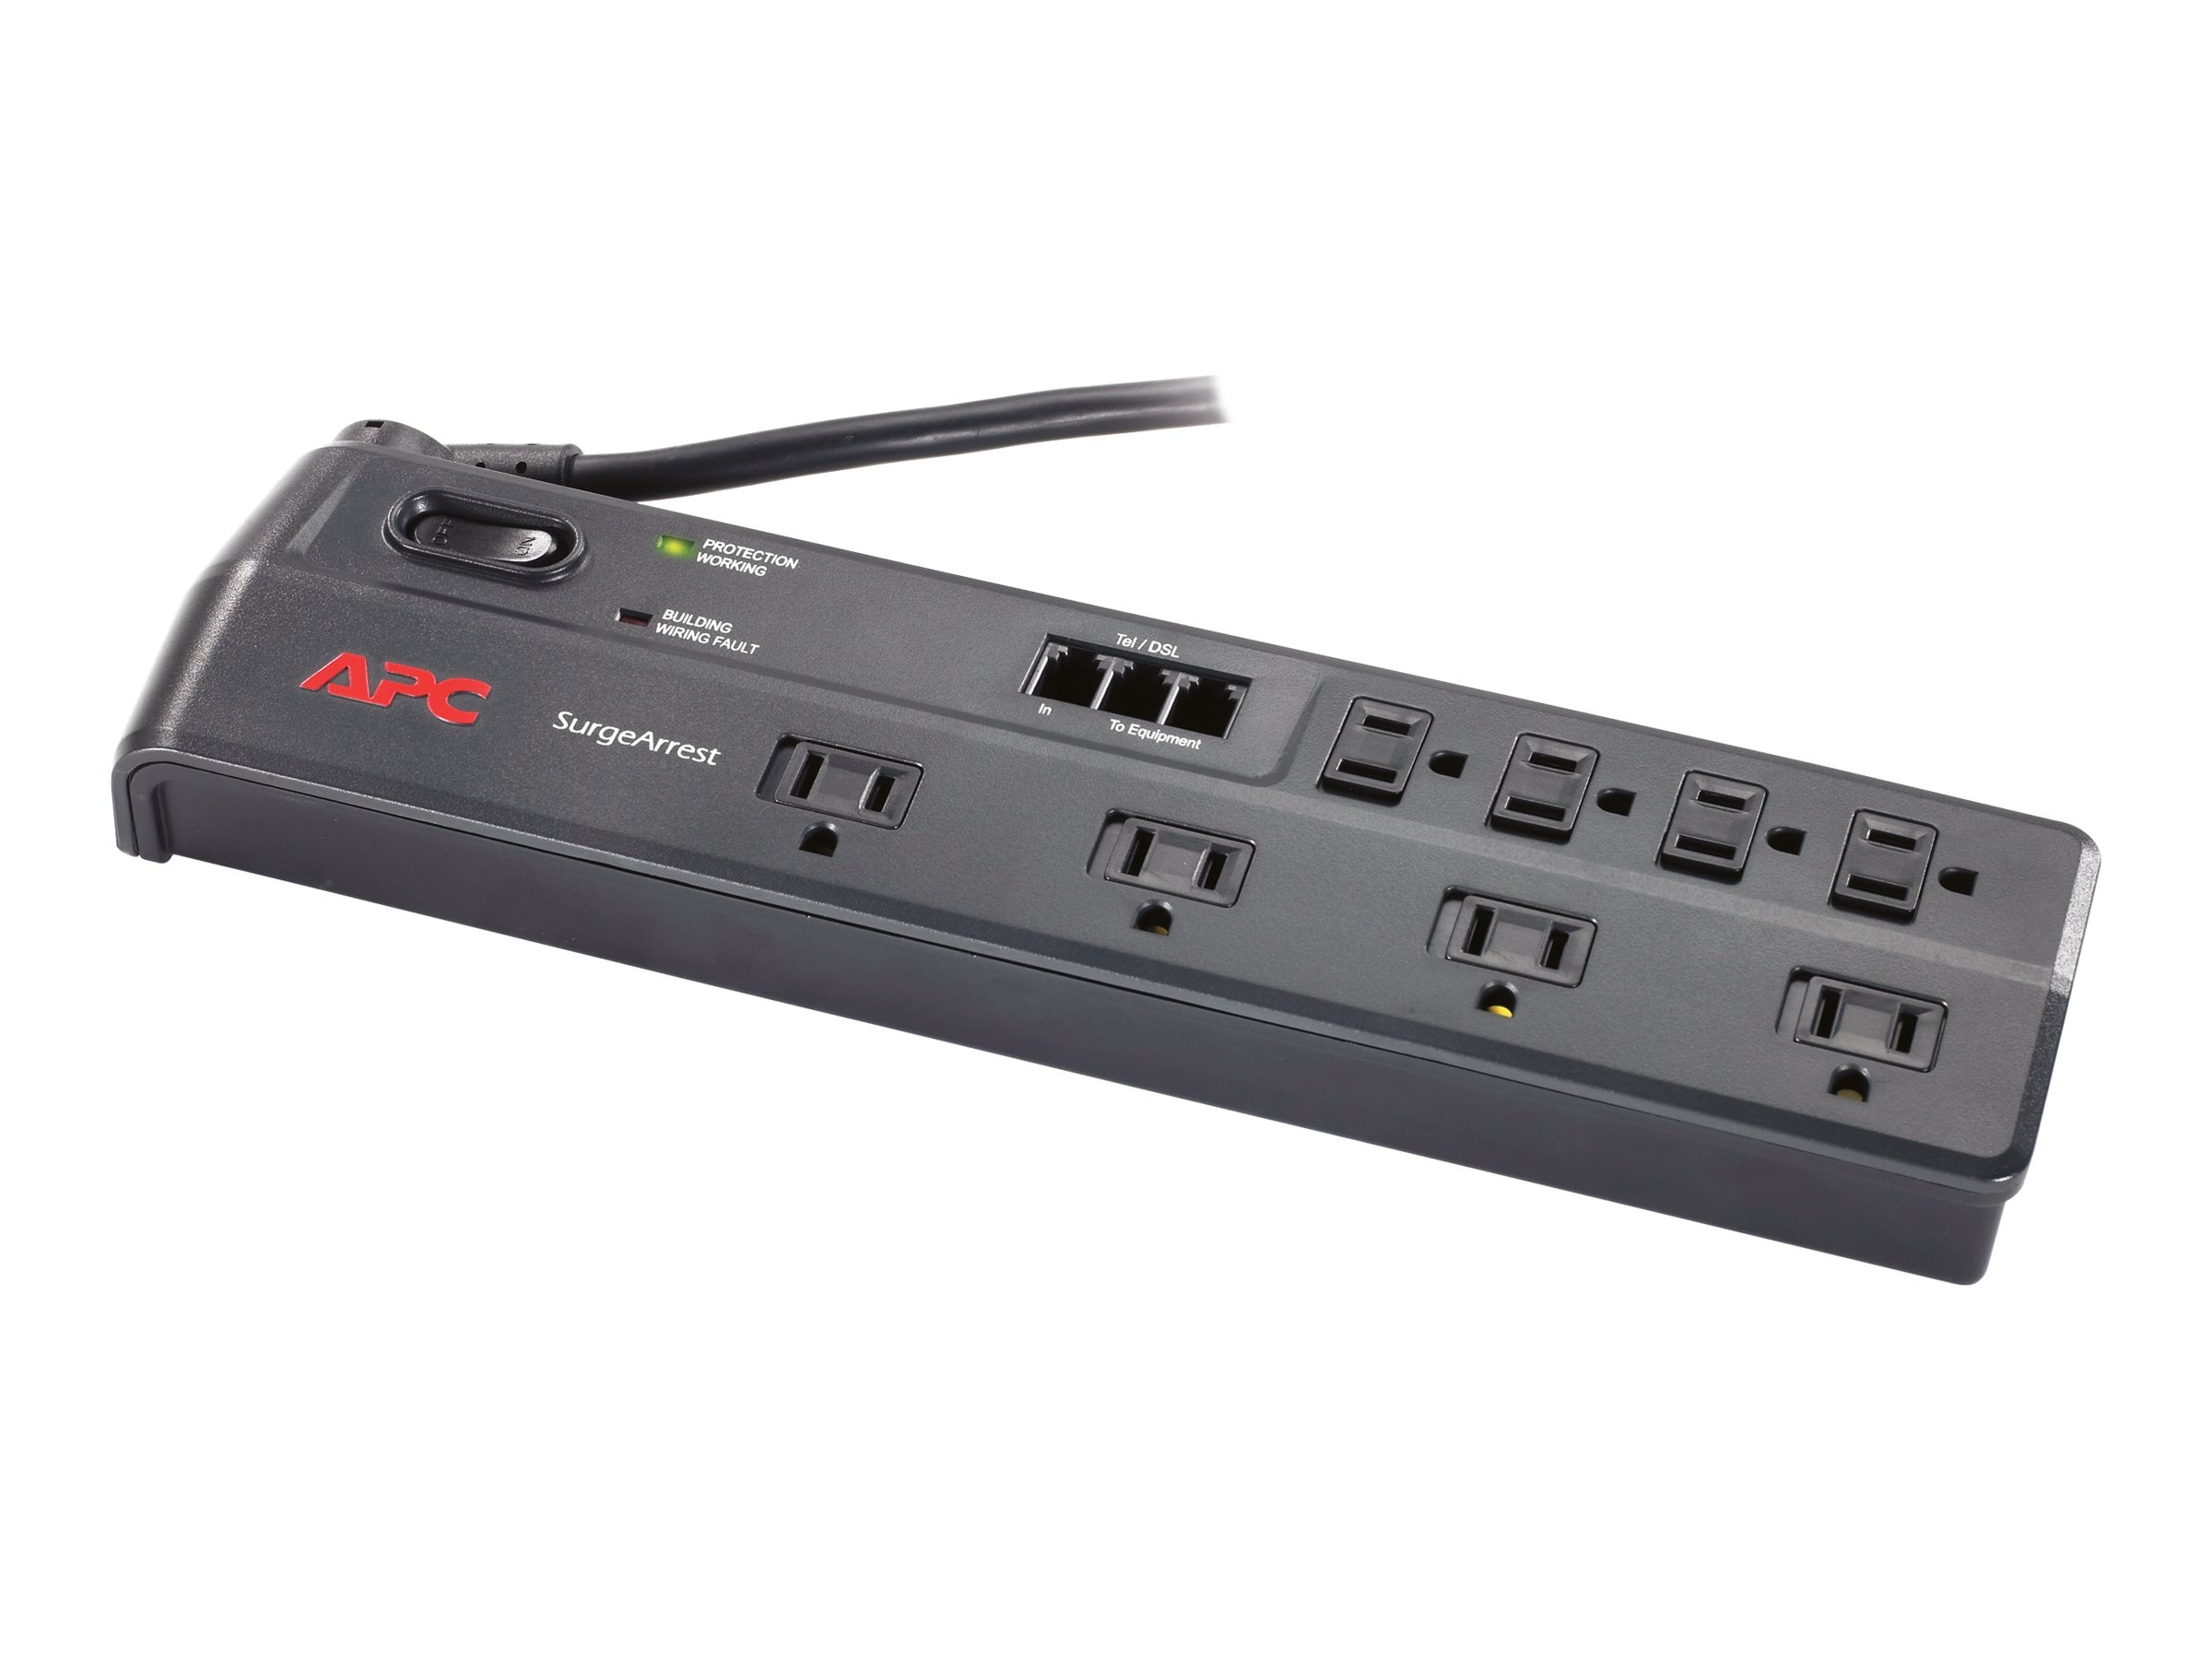 APC Home Office SurgeArrest (8) Outlets, 1750 joules, Telephone Splitter, P8T3, 8295940, Surge Suppressors